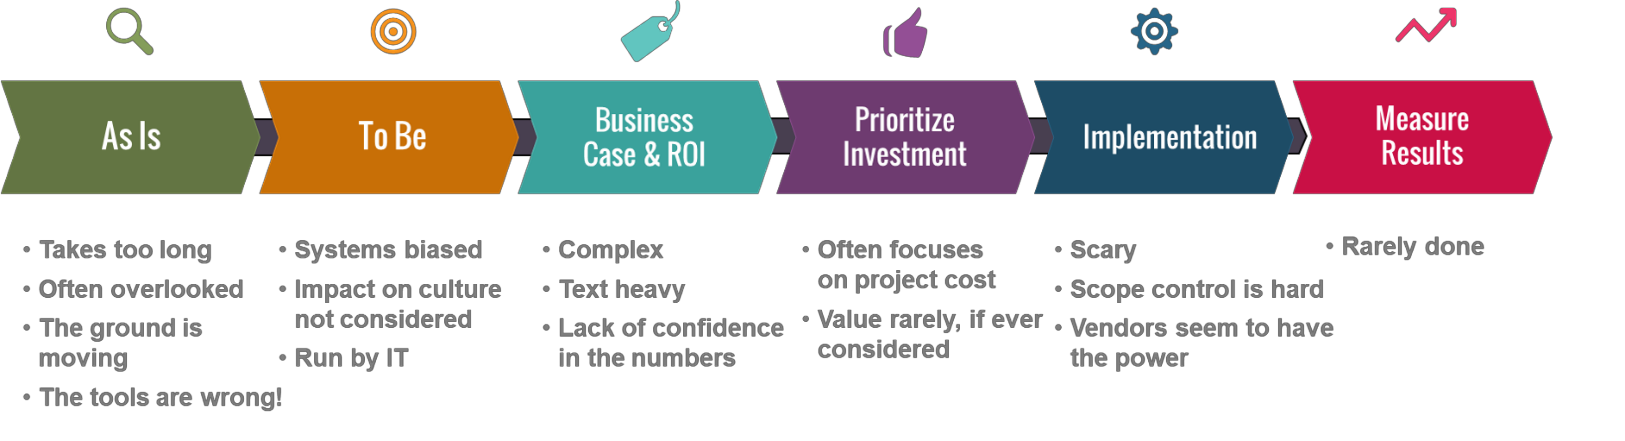 Typical business case process